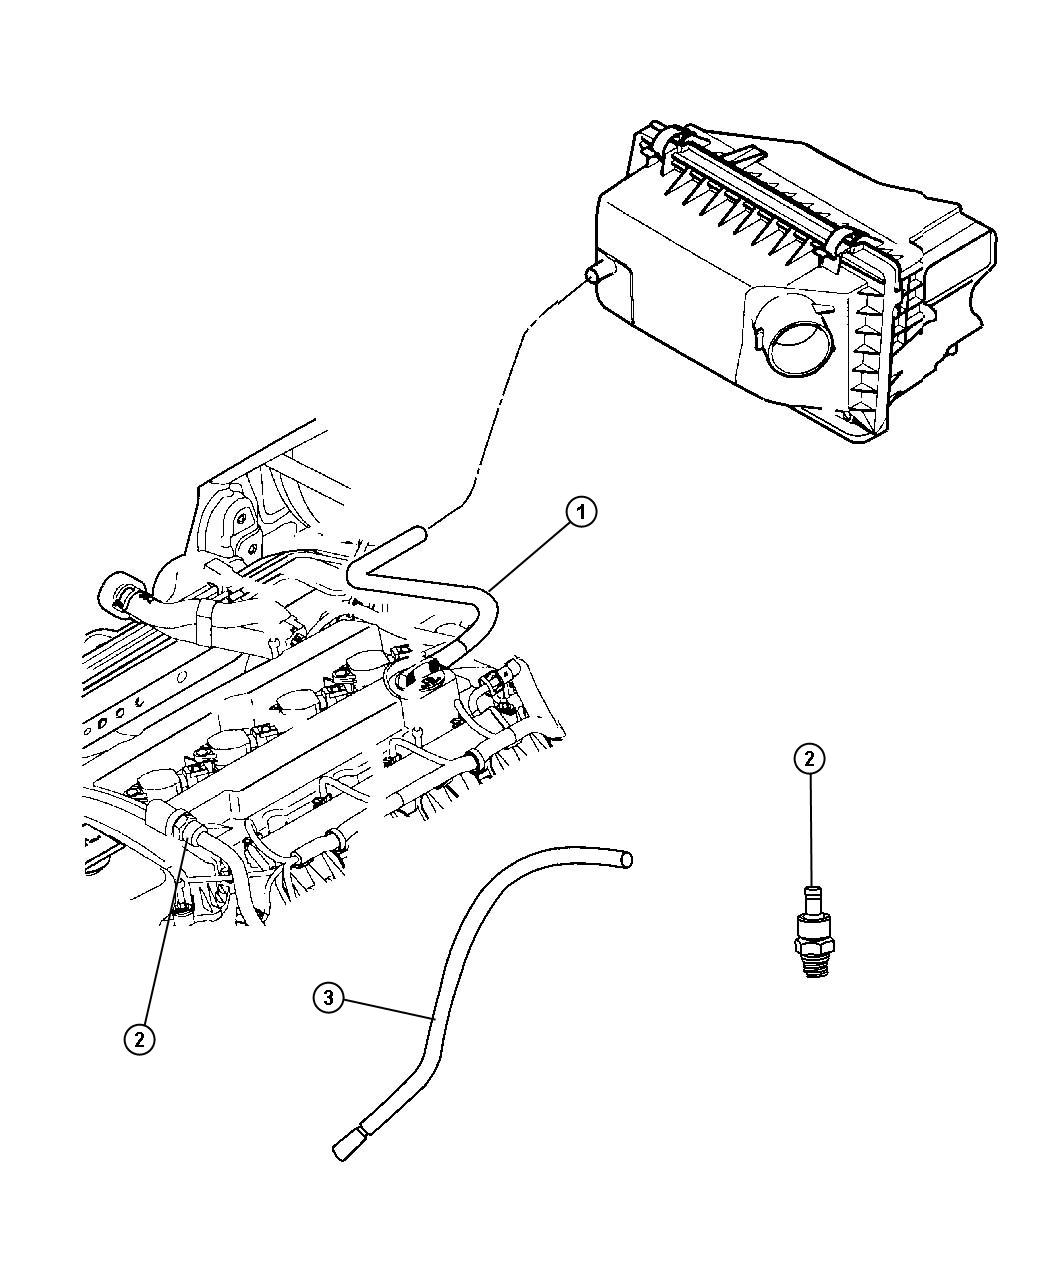 Dodge Caliber Fuel System Diagram